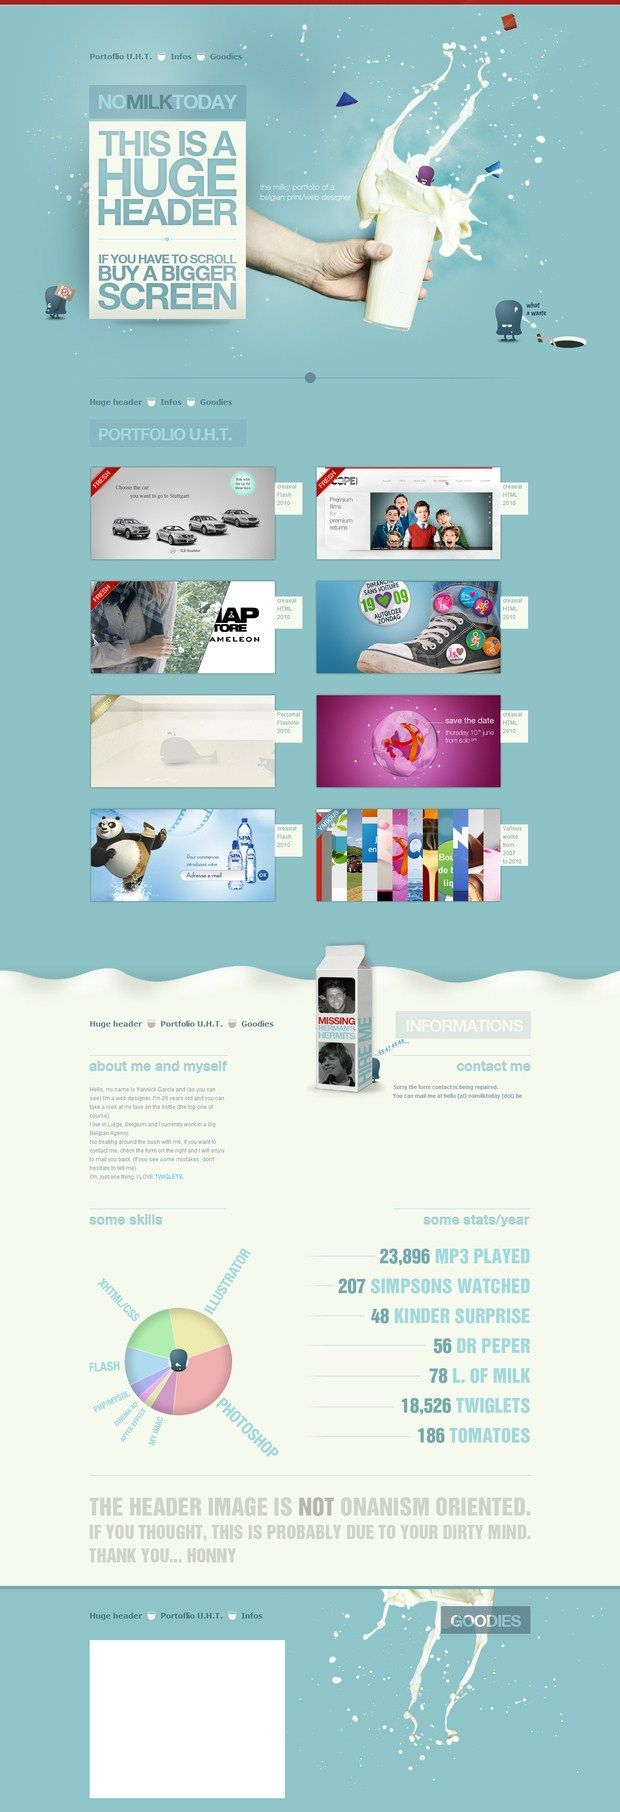 Milk Today | #webdesign #it #web #design #layout #userinterface #website #webdesign < repinned by www.BlickeDeeler.de | Take a look at www.WebsiteDesign-Hamburg.de